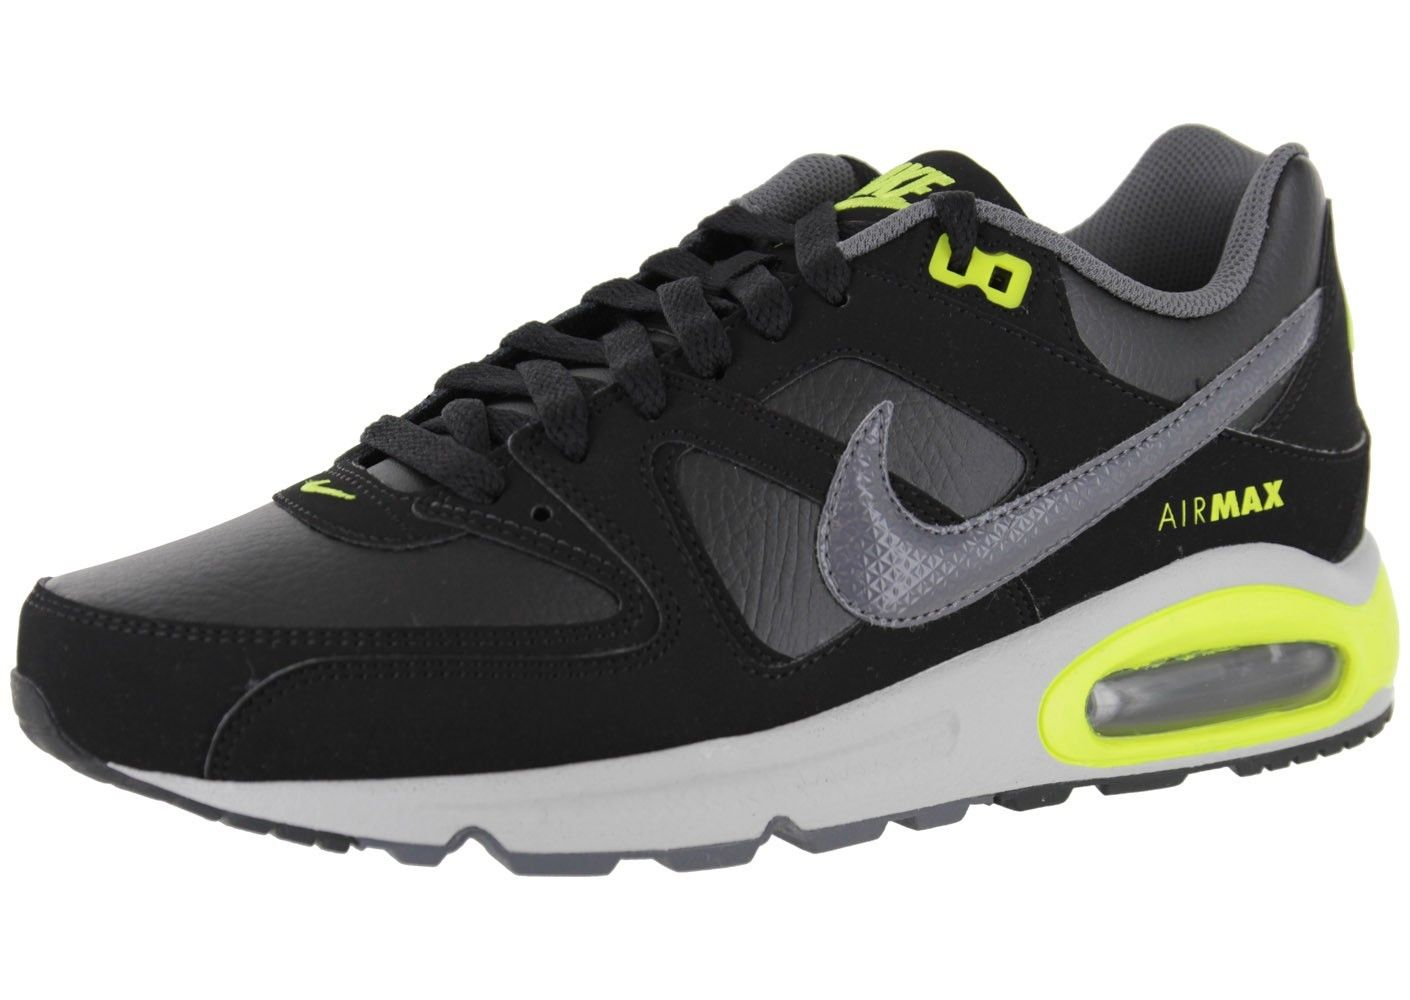 MEN'S NIKE AIR MAX COMMAND BLACK, GREY YELLOW WITH GREY